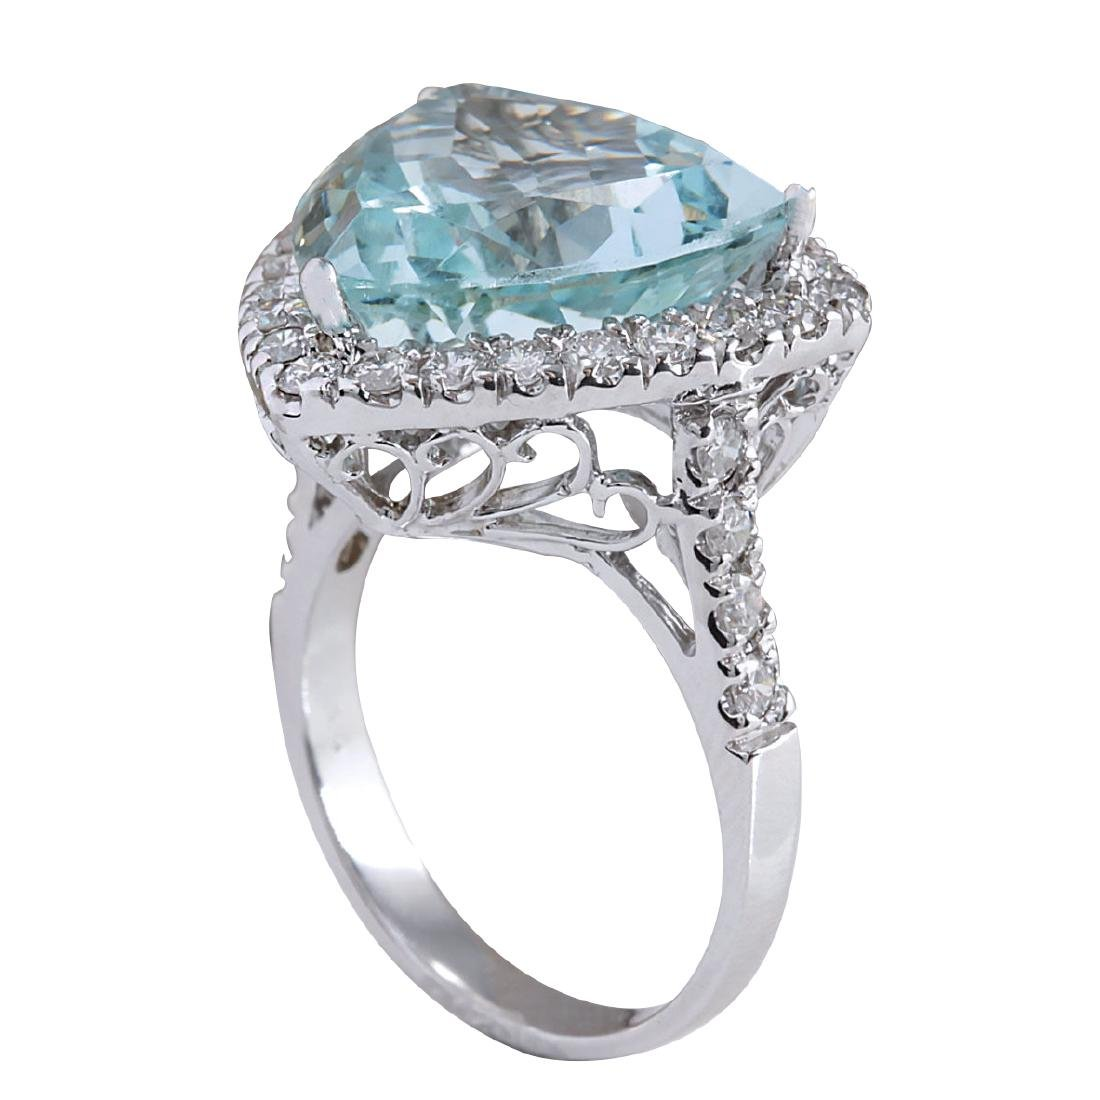 10.26CTW Natural Aquamarine And Diamond Ring In 18K - 3